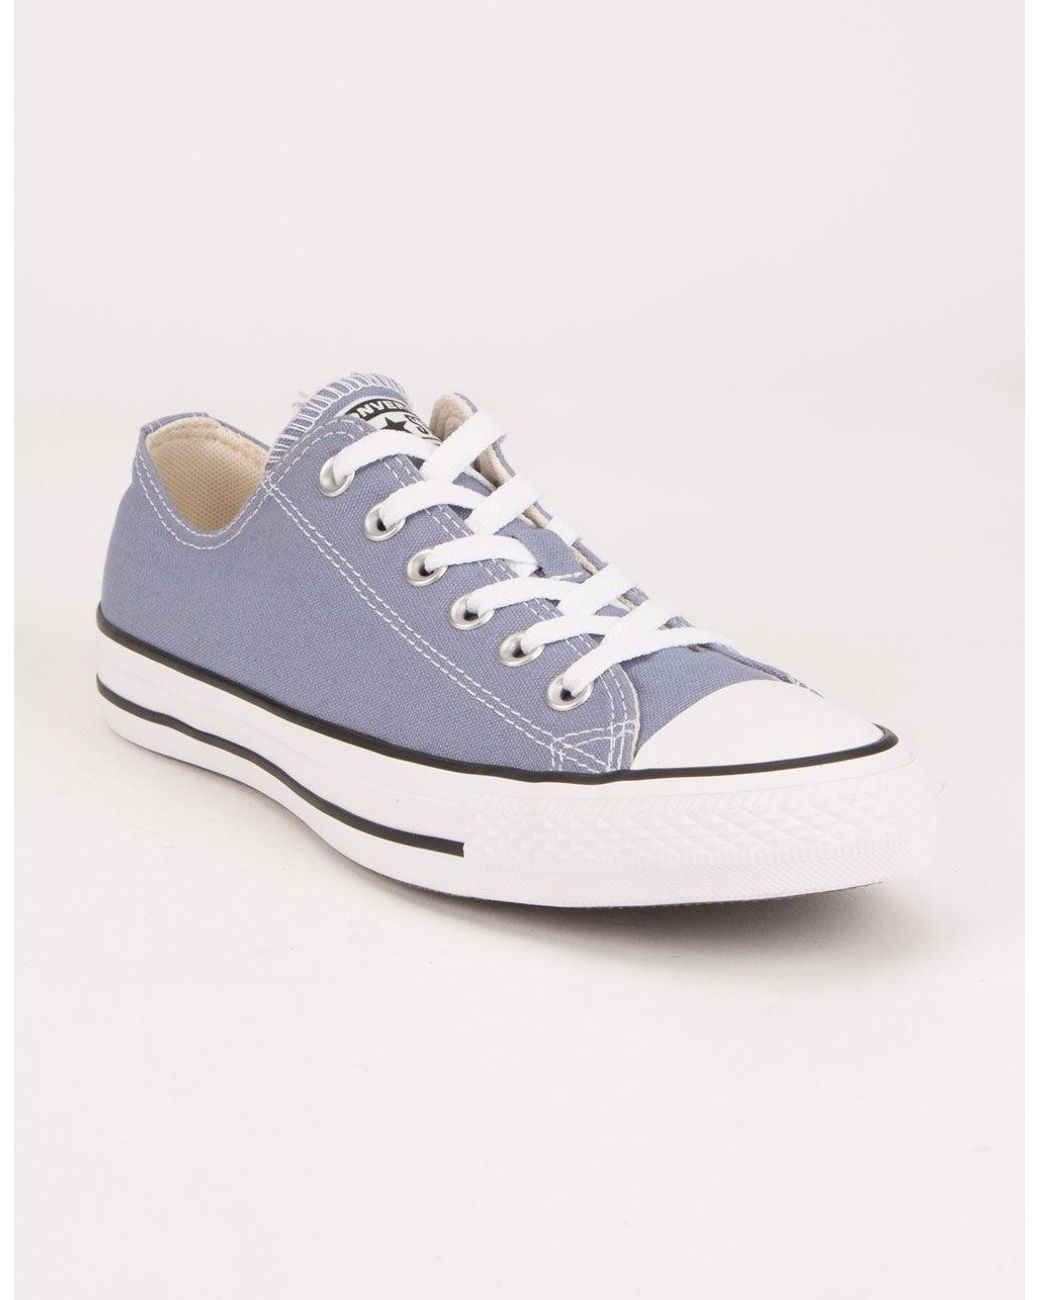 converse all star stella